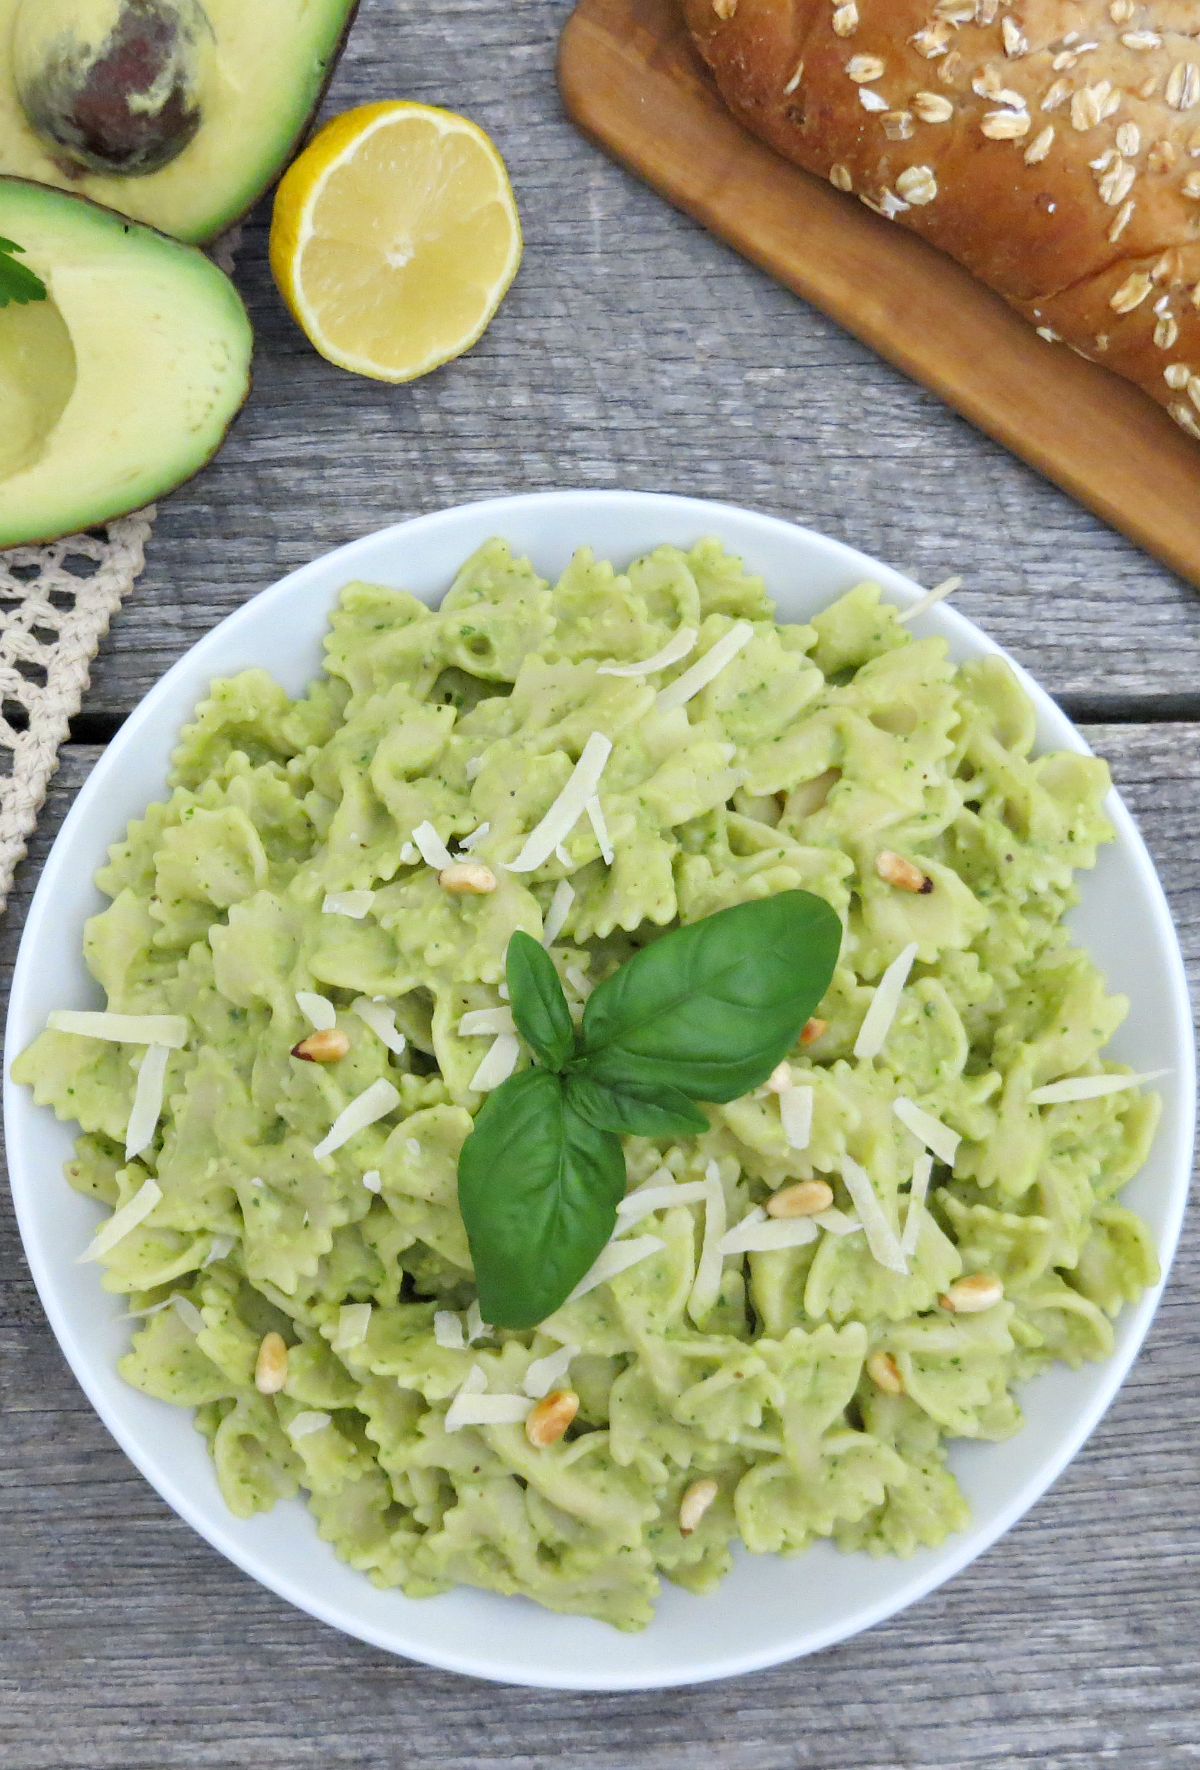 Creamy Avocado Pasta Sauce Recipe - The Taylor House